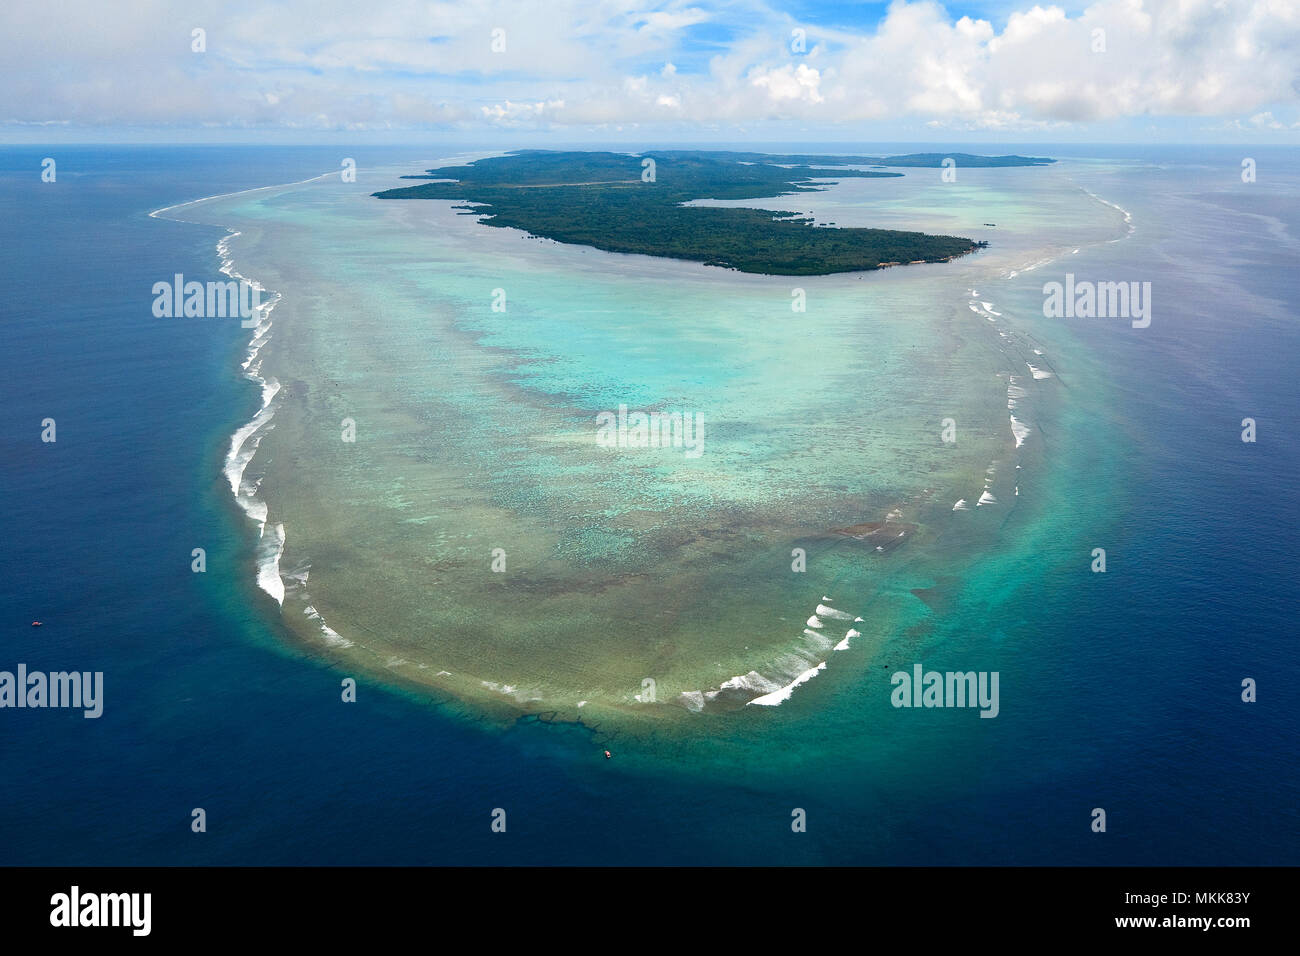 Yap Island. southern end, reef, lagoon, waves, corals, clouds, pacific ocean, sea view, drone photography, bird's eye view, Yap, Caroline Islands, Fed - Stock Image